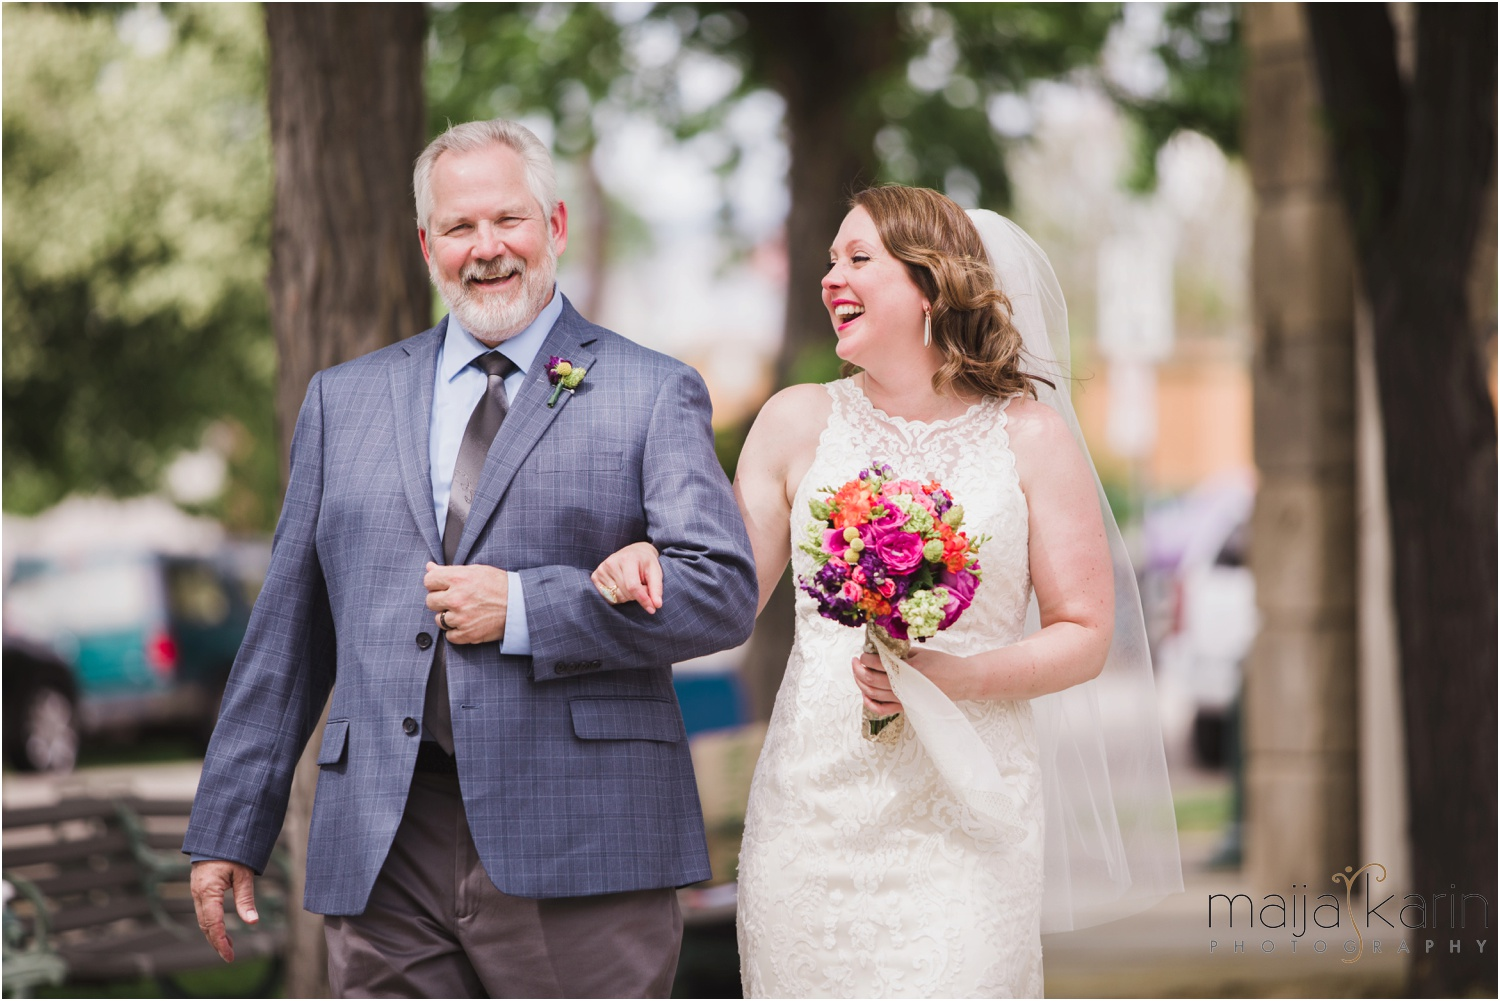 CW-Moore-Park-Boise-Wedding-Maija-Karin-Photography_0034.jpg